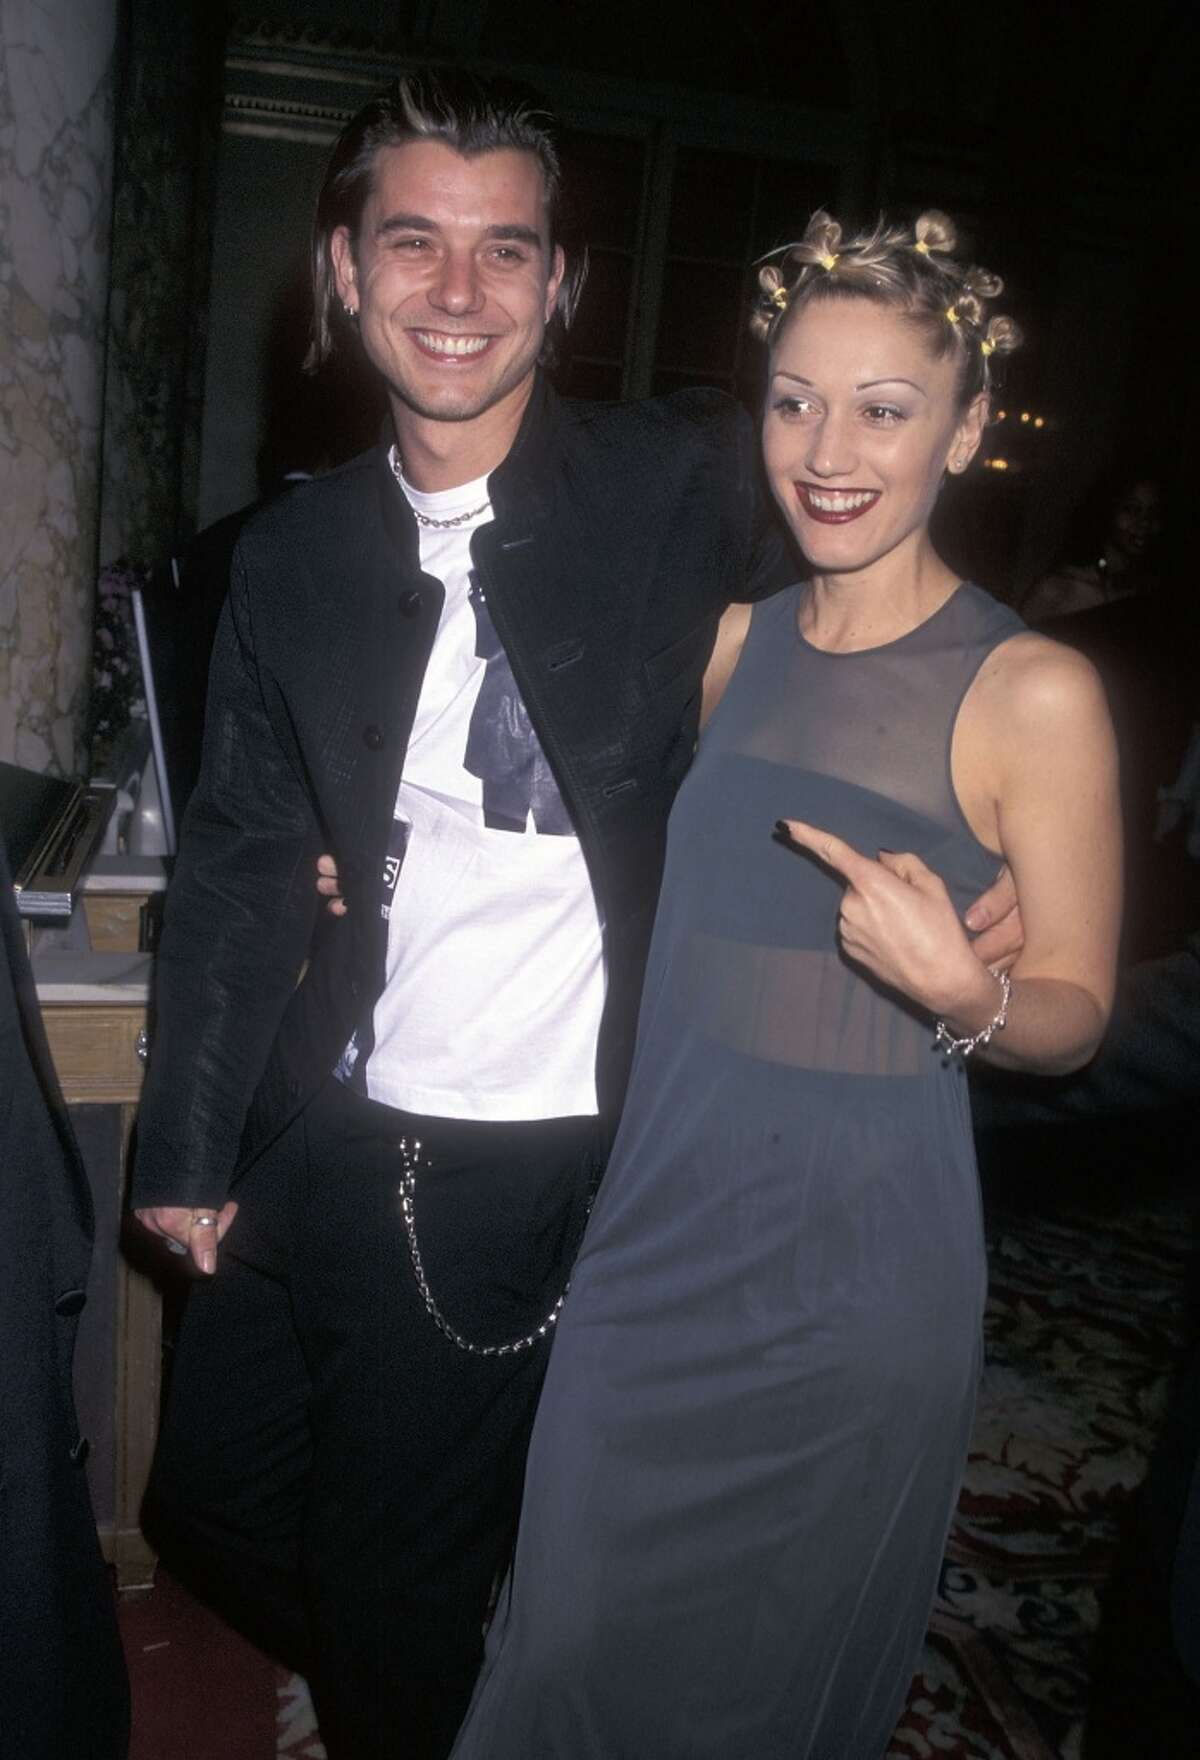 Musician Gavin Rossdale of Bush and singer Gwen Stefani of No Doubt attend the 40th Annual Grammy Awards Pre-Party Hosted by Clive Davis on February 24, 1998 at the Plaza Hotel in New York City.